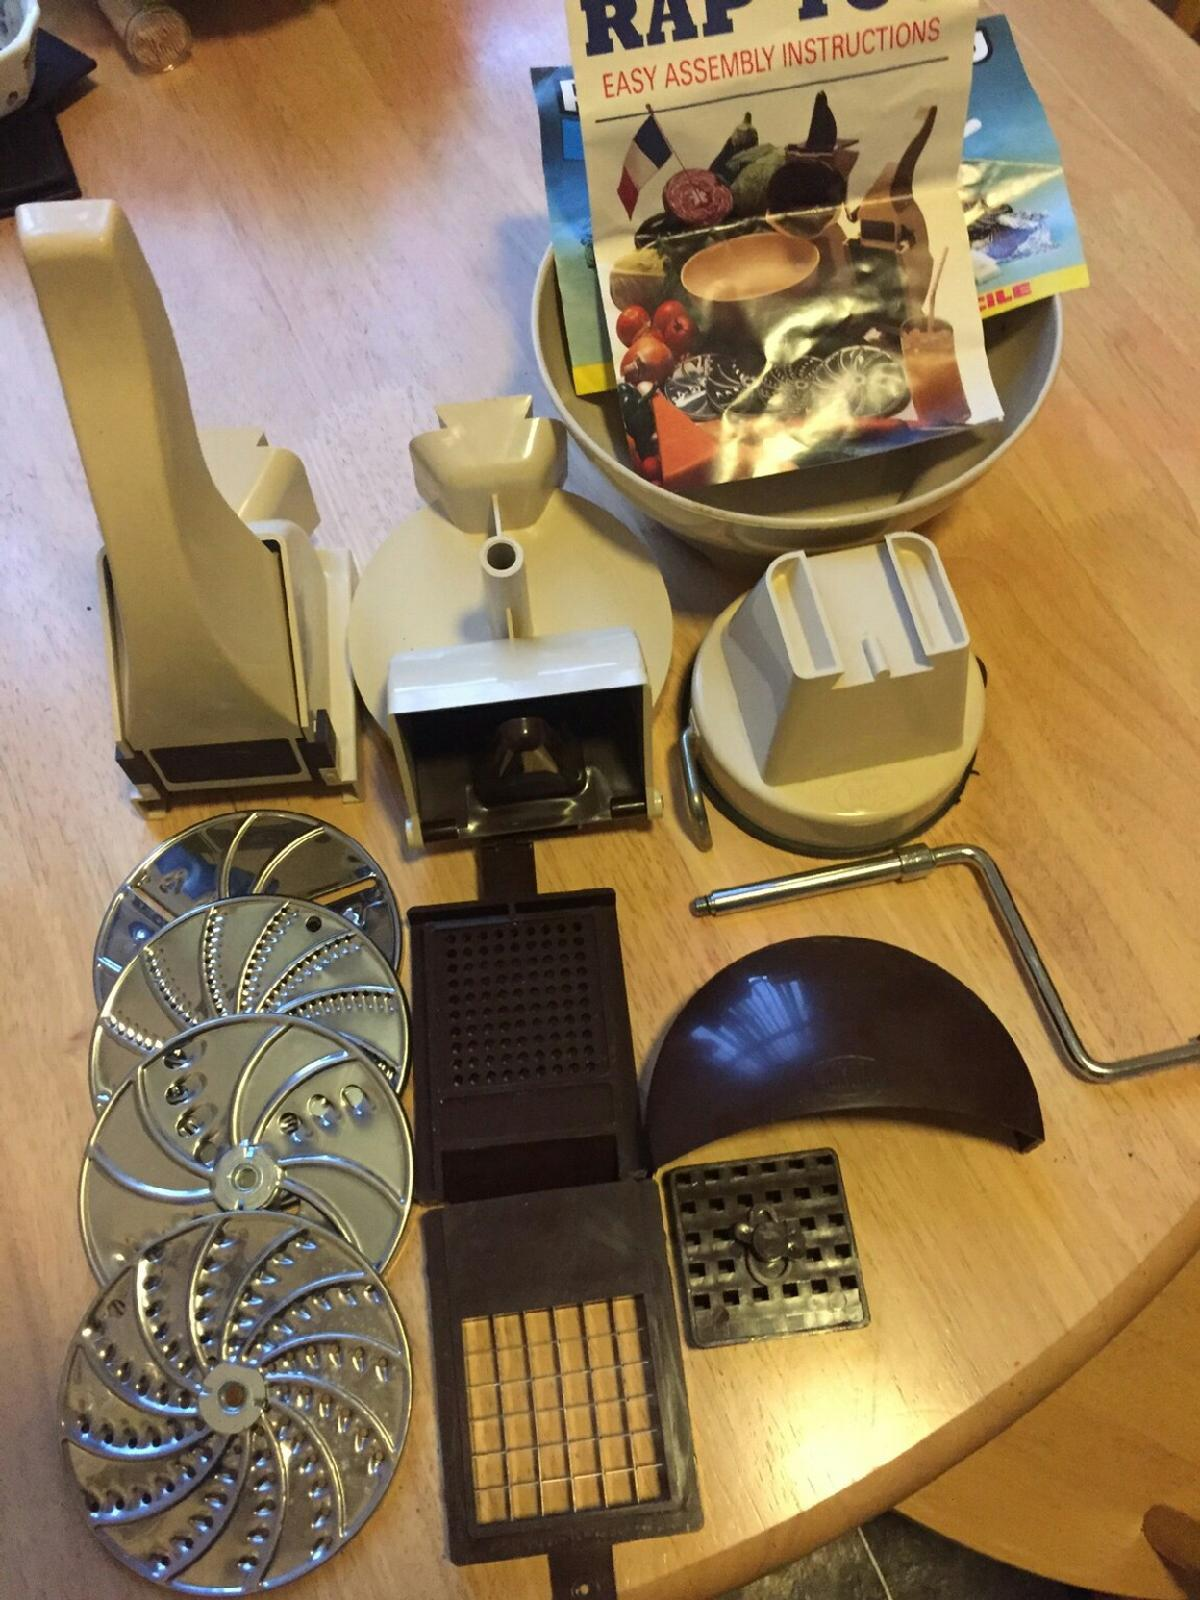 Vintage RAP'TOU 1980s Food slicer in CT9 Thanet for £15 00